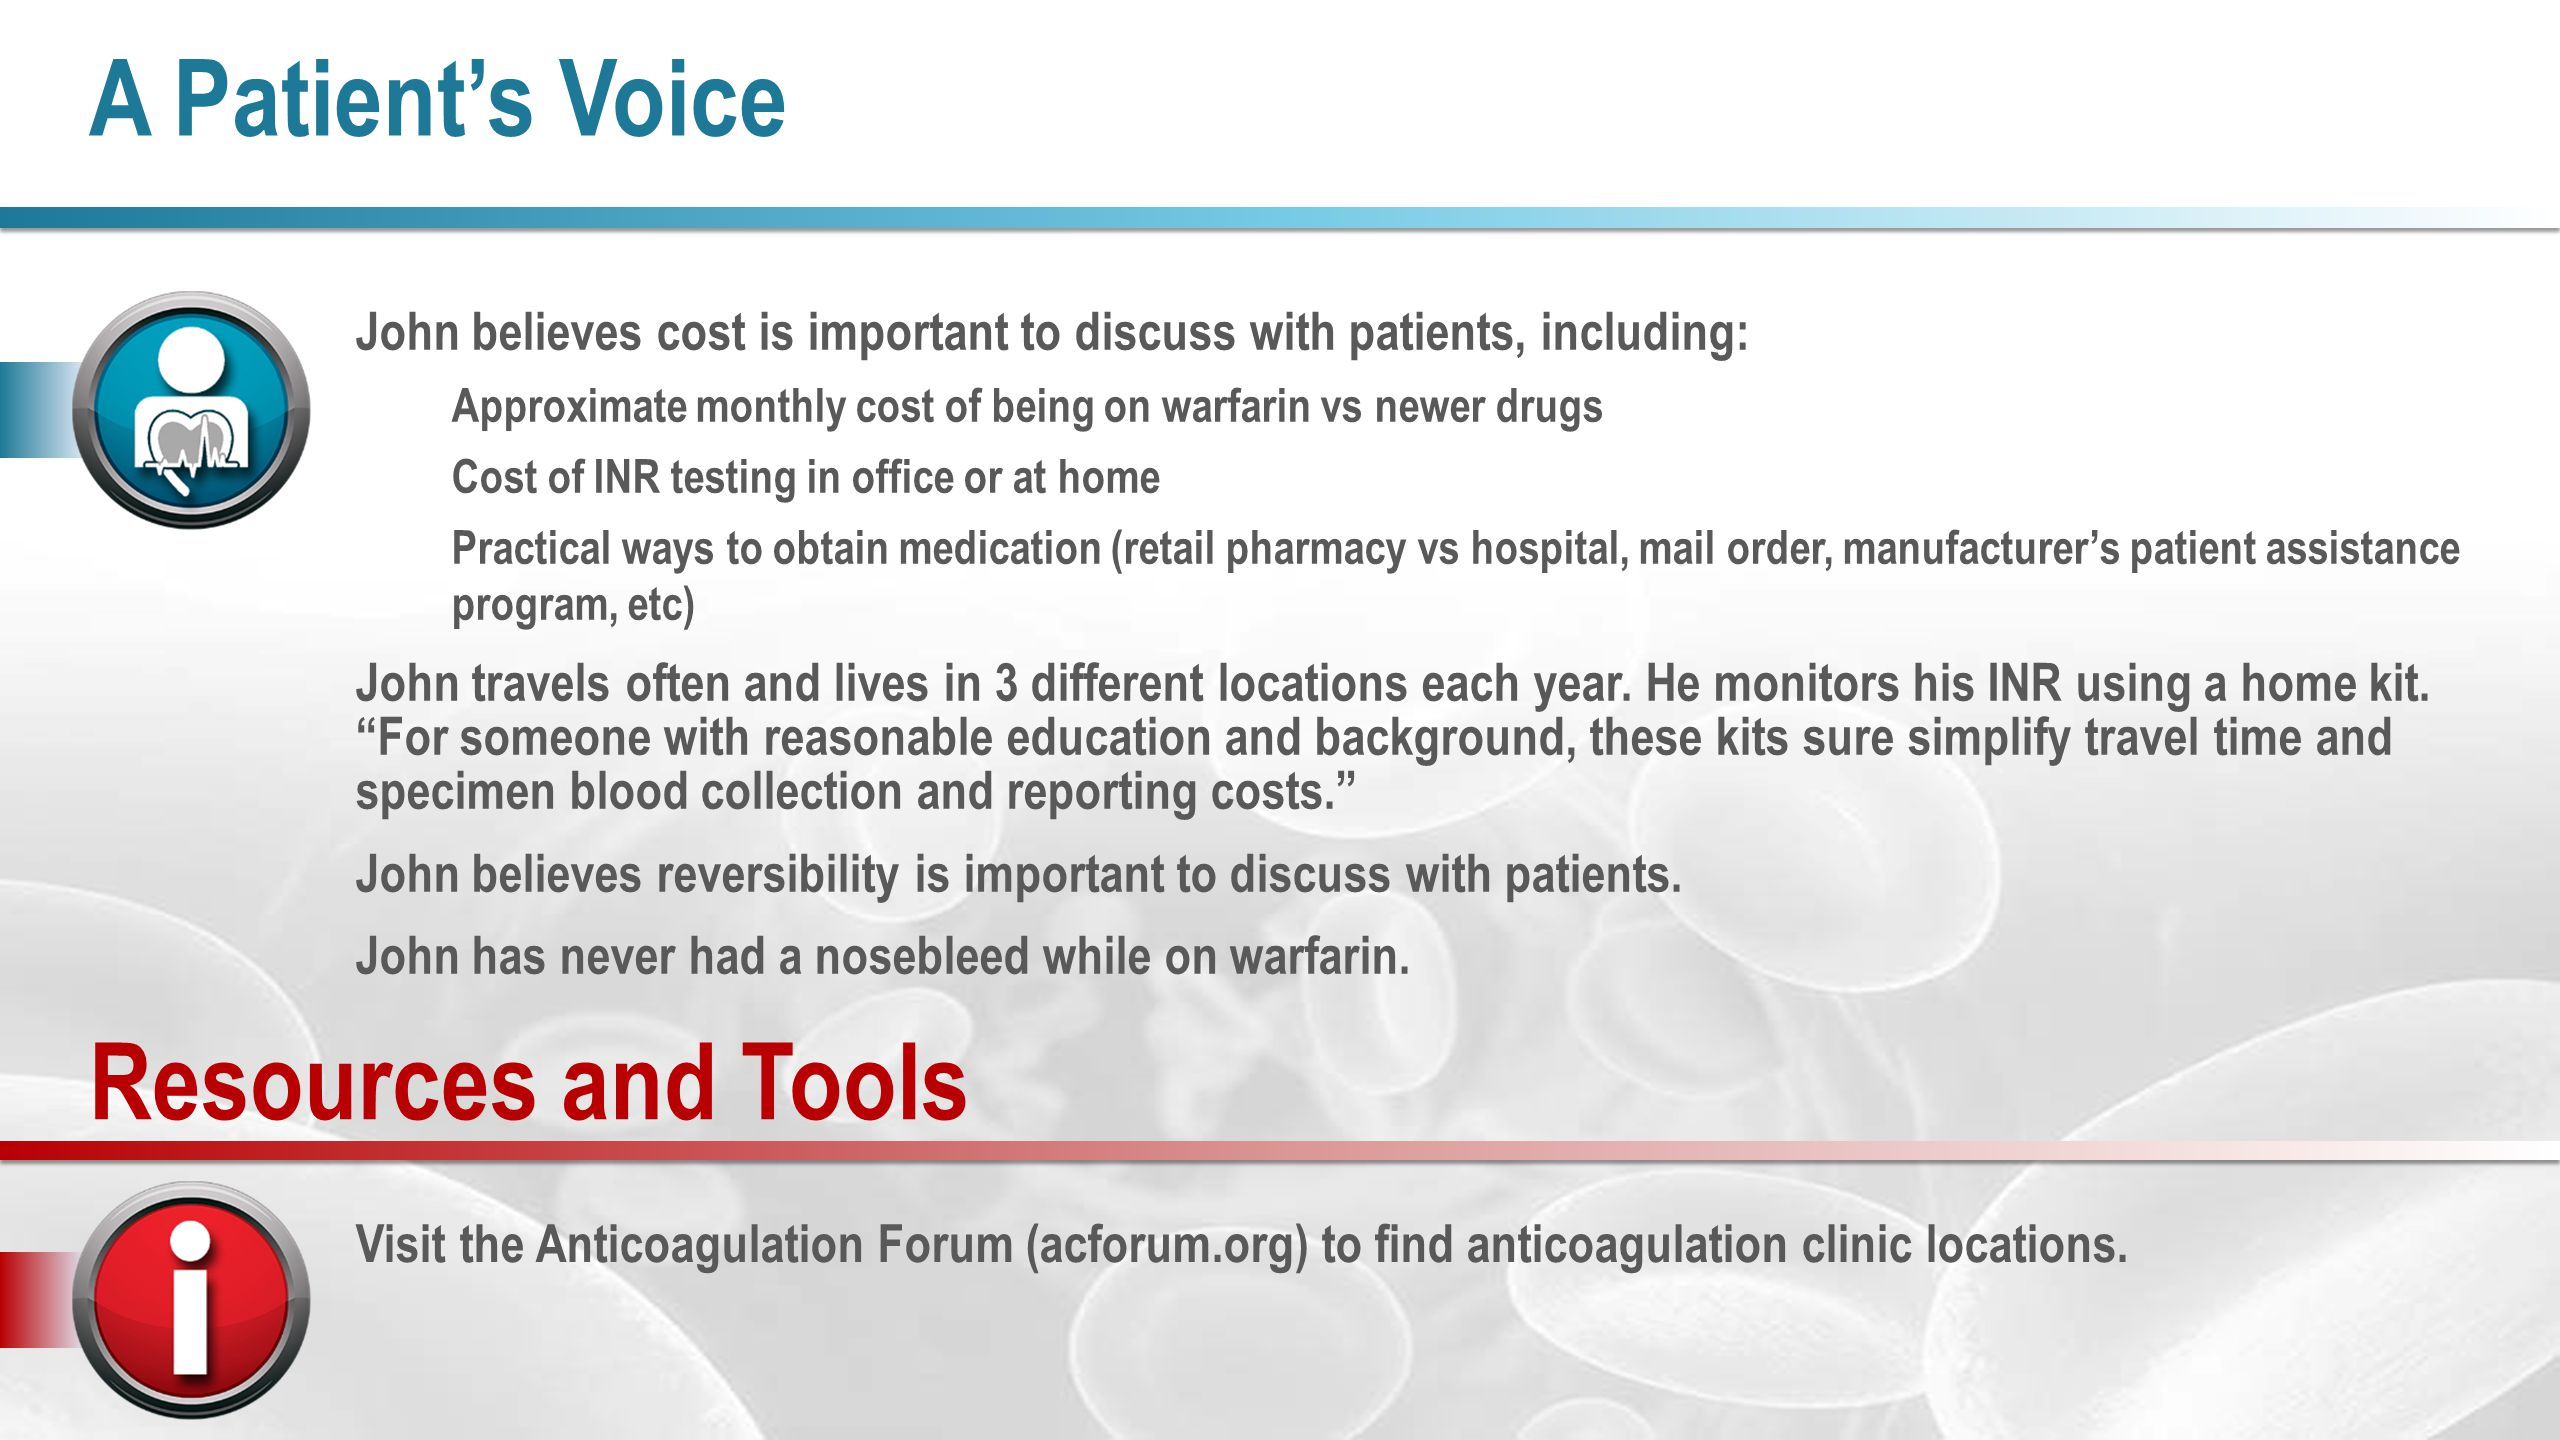 A Patient's Voice John believes cost is important to discuss with patients, including: Approximate monthly cost of being on warfarin vs newer drugs Co